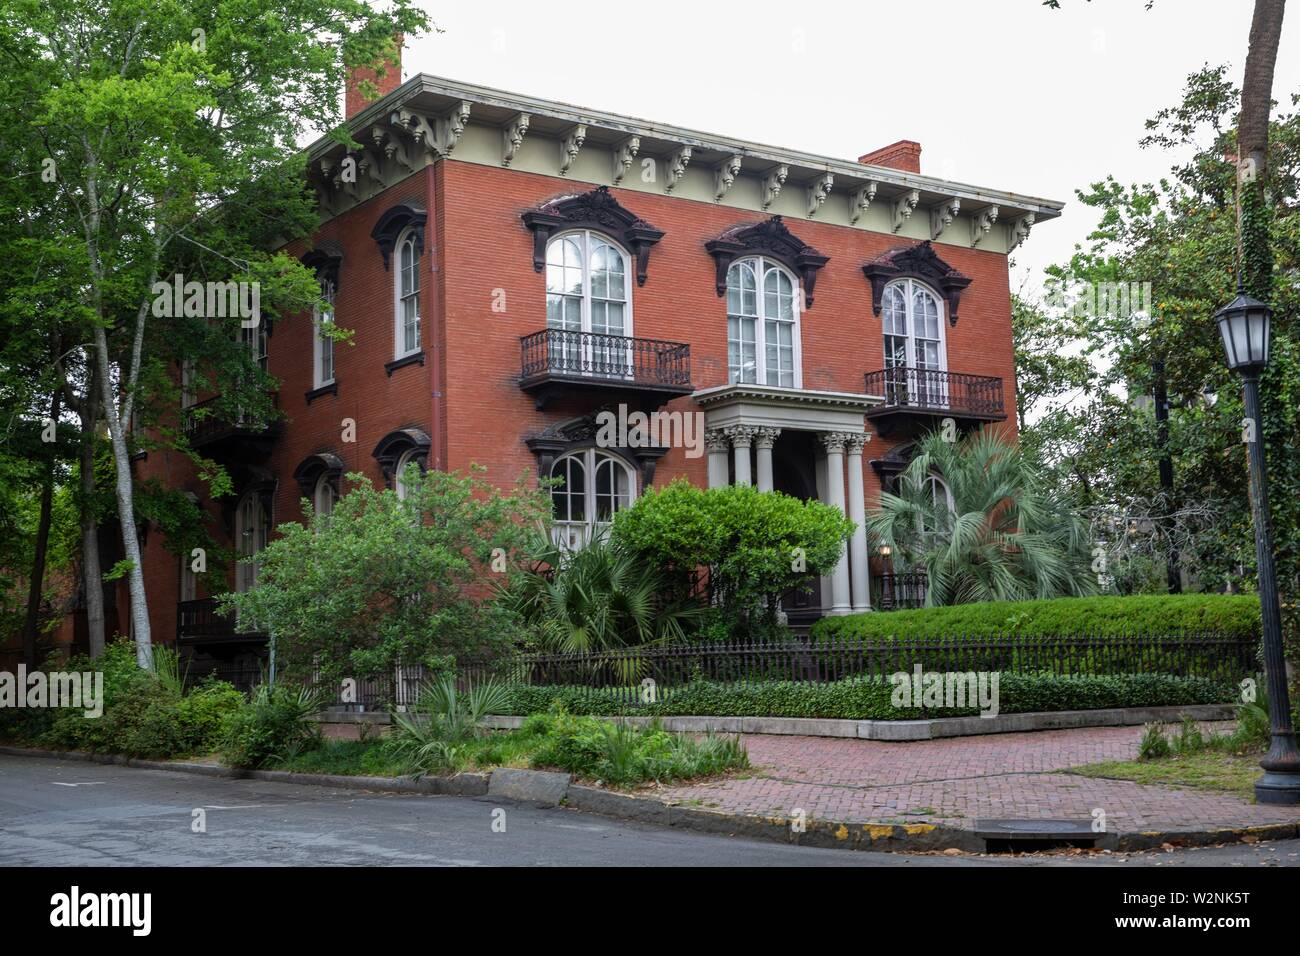 Mercer house Midnight in the garden of good and evil. - Stock Image